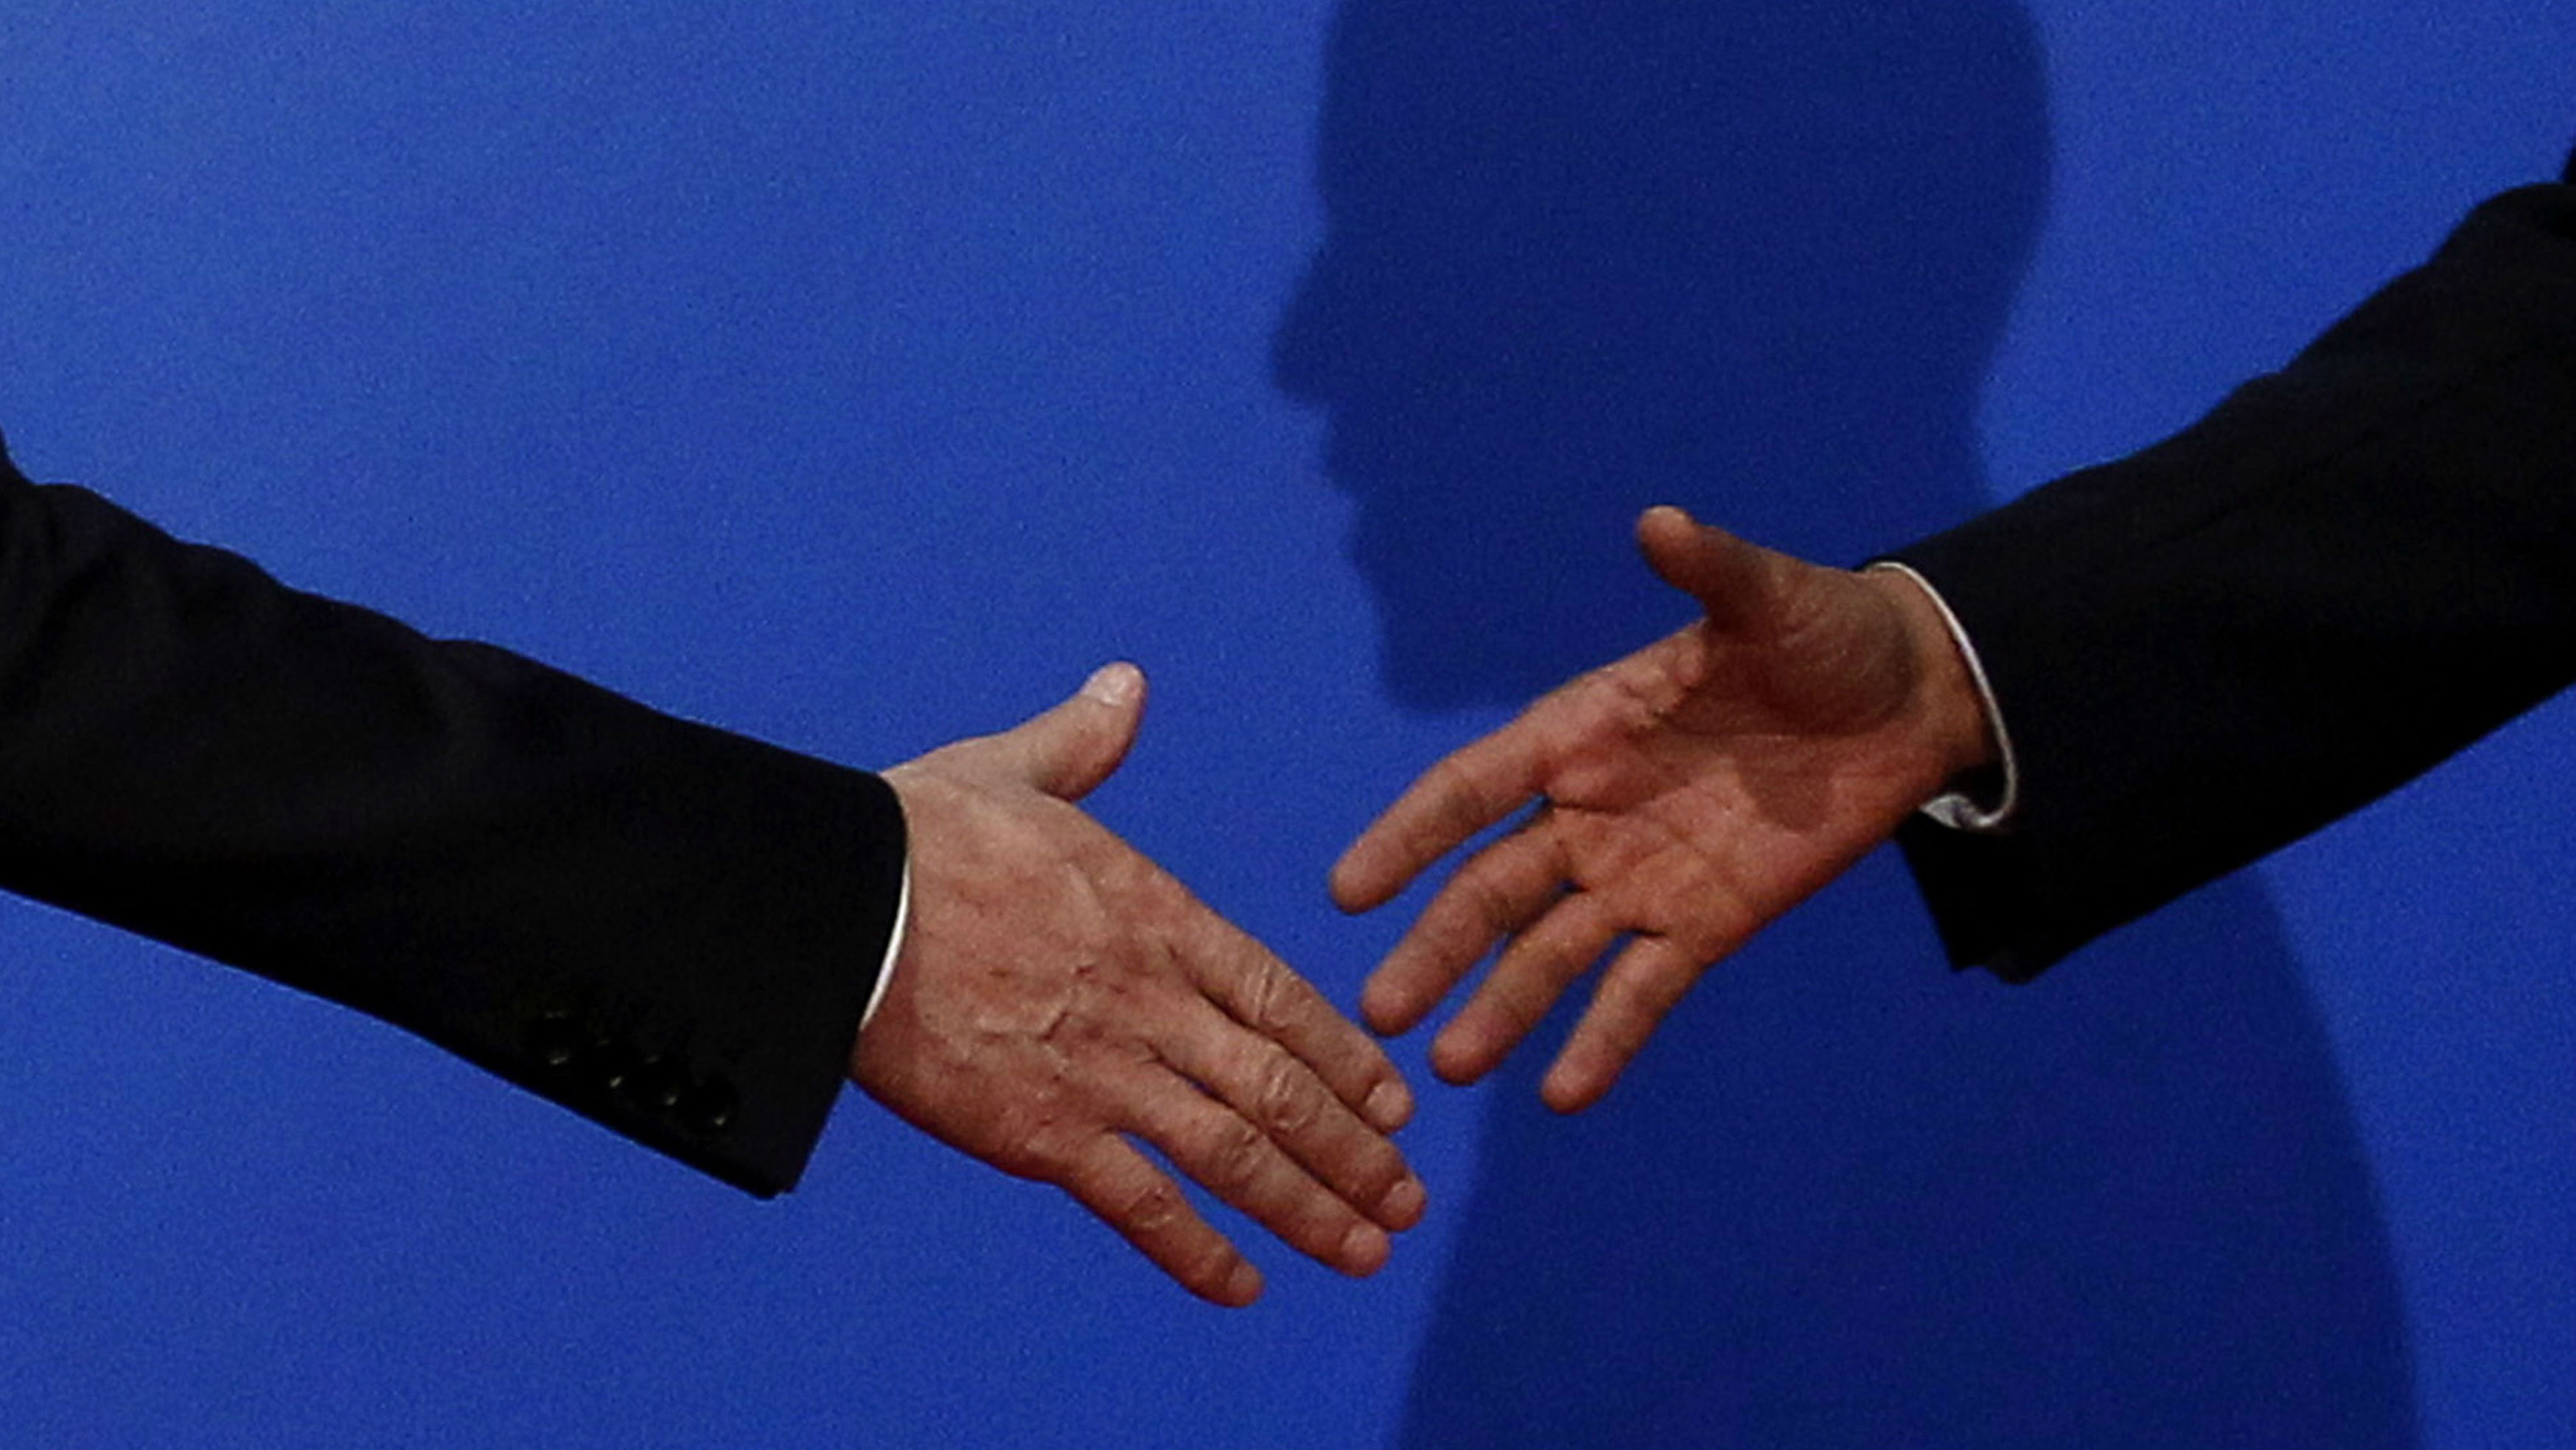 "U.S. President Barack Obama casts a shadow as he reaches out to shake hands with South Korea's President Lee Myung-bak at the official arrival for the G20 Summit working dinner at the National Museum in Seoul, November 11, 2010. This photo won an Award of Excellence in the Presidential category in the White House News Photographer's Association (WHNPA) ""Eyes of History 2011"" contest and was also part of Jim Young's entries in the Porfolio and Poltical Portfolio categories which also received awards in the contest."